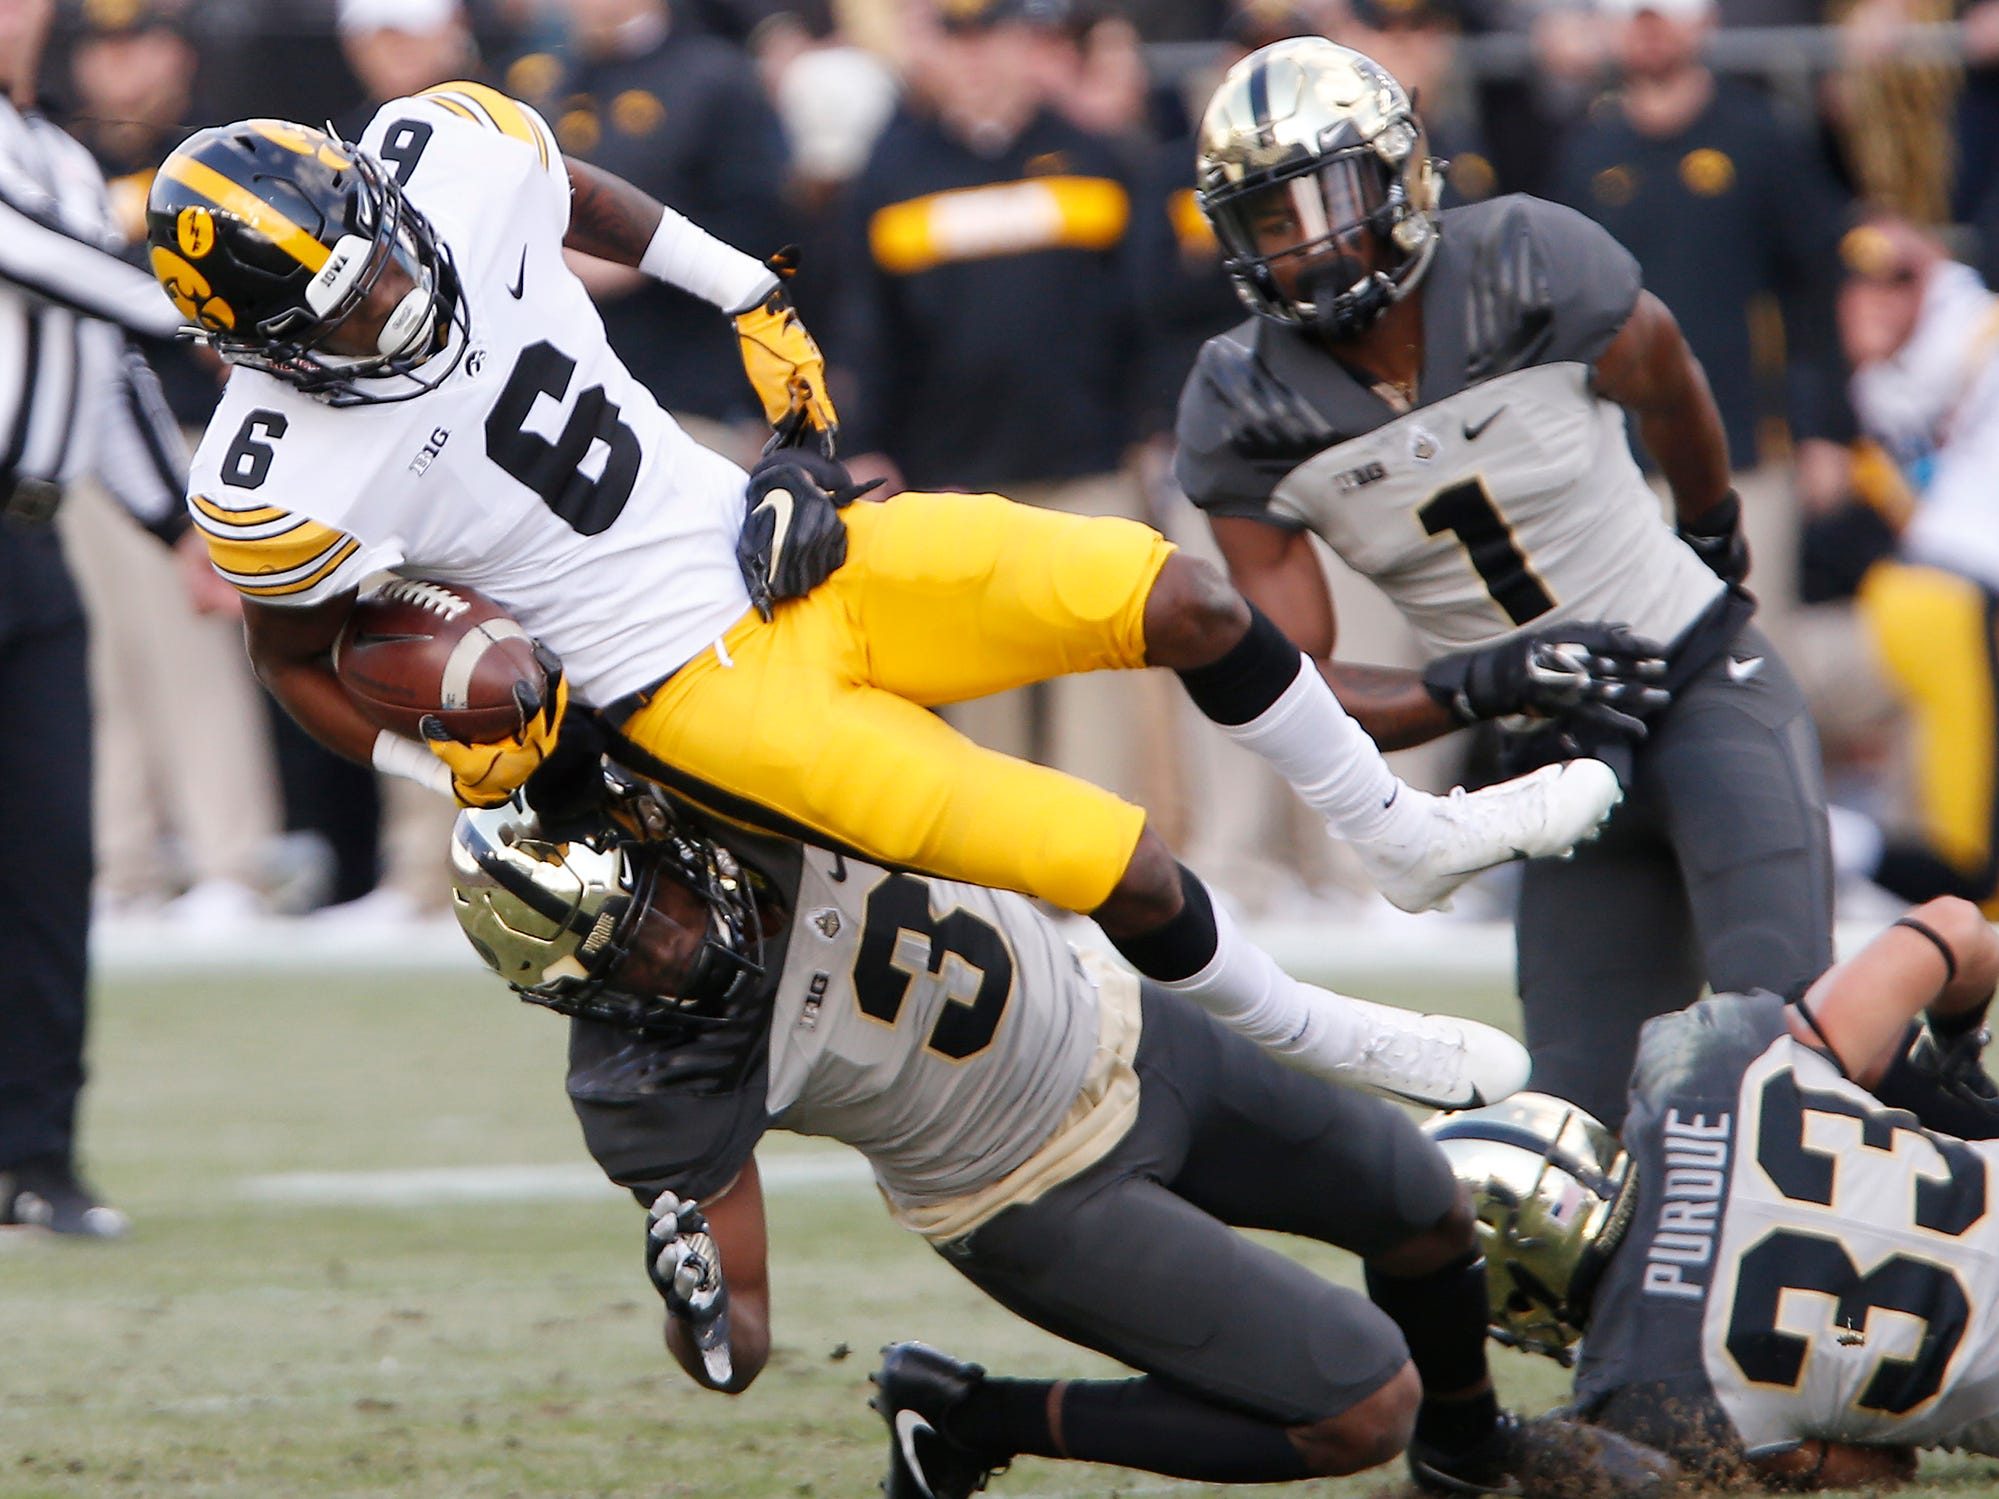 Ihmir Smith-Marsette of Iowa is brought down by Kamal Hardy of Purdue on a kickoff return Saturday, November 3, 2018, at Ross-Ade Stadium. Purdue defeated Iowa 38-36.